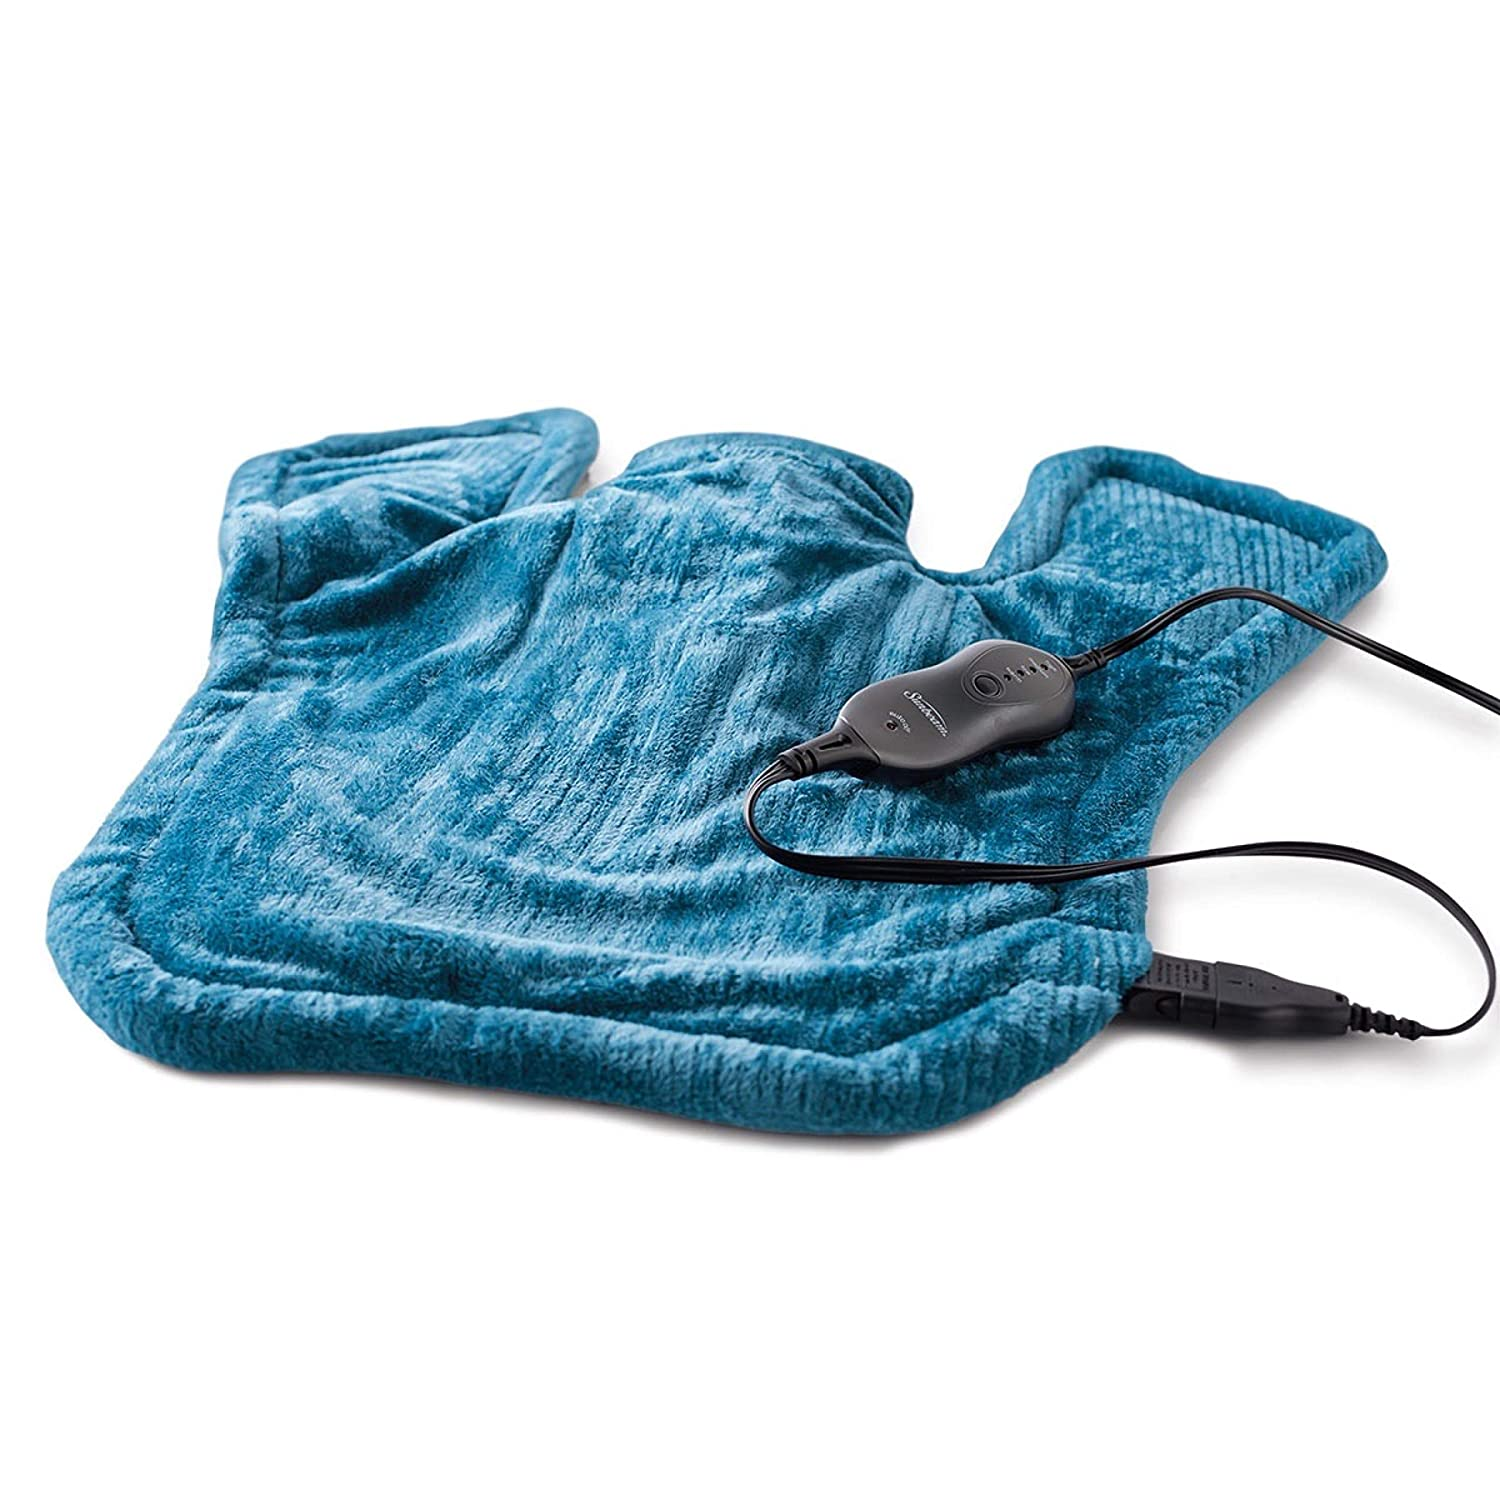 fourth Best Heating Pad For Neck and Shoulder Pain